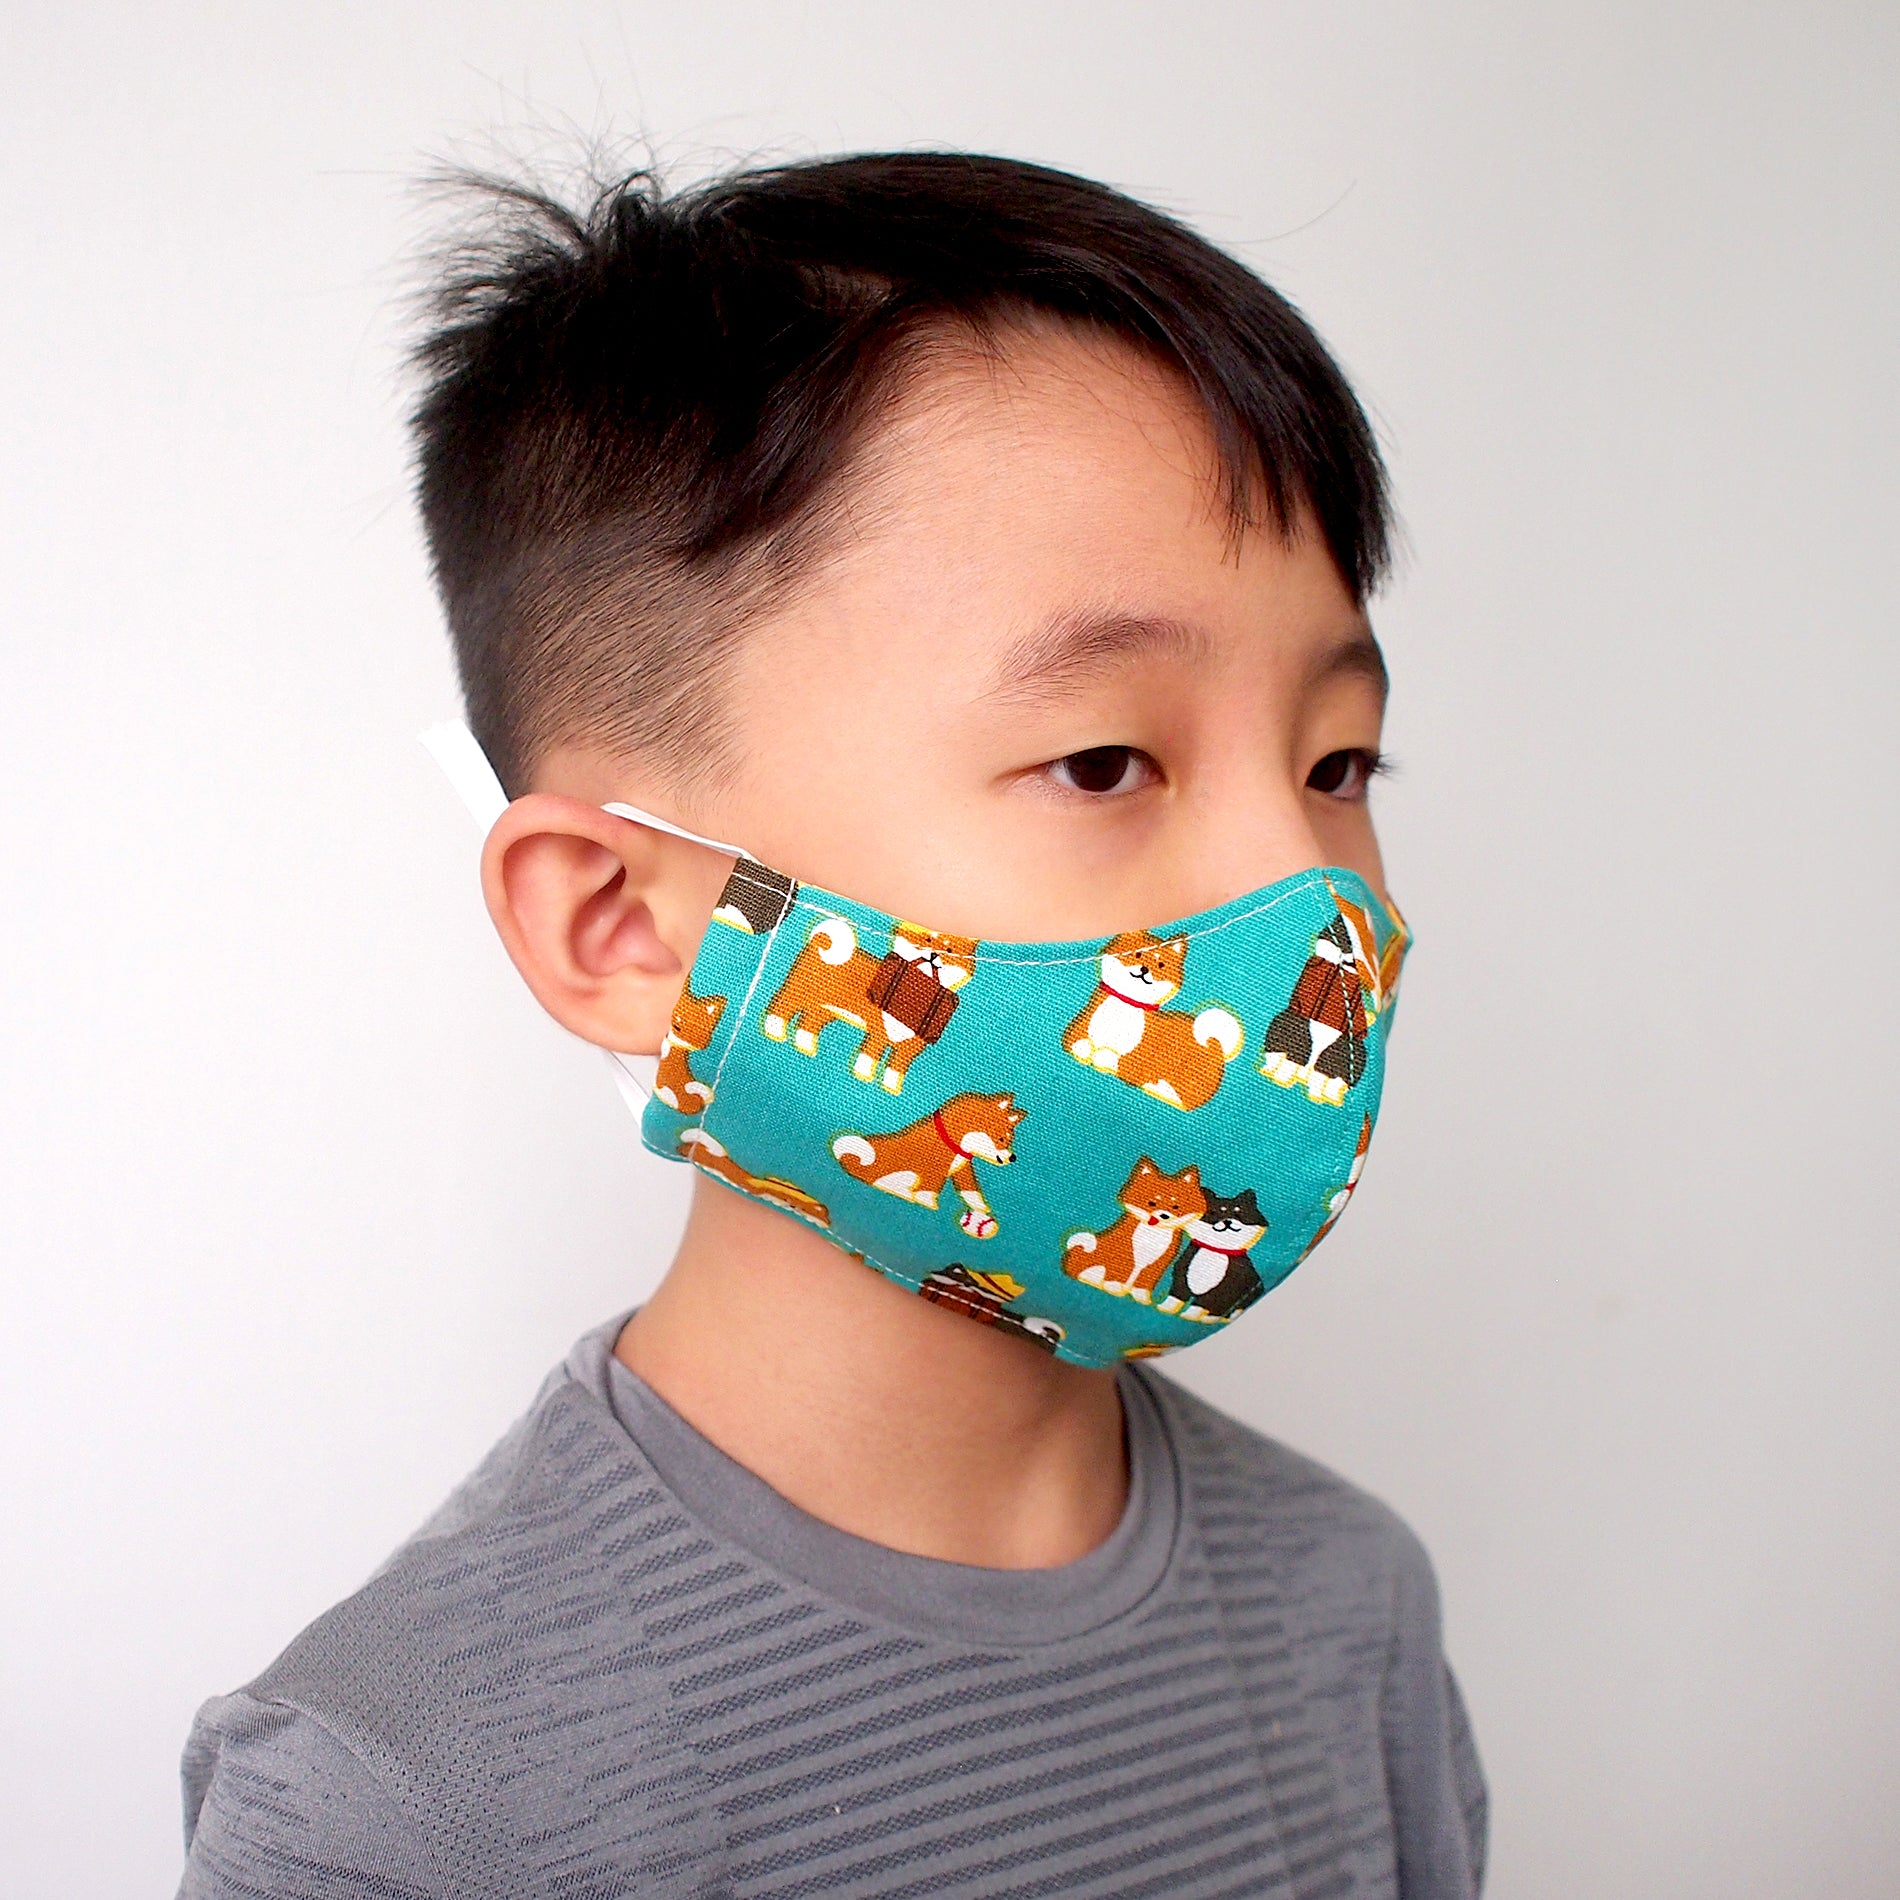 Face Mask (Pocket Insert) Kids Size - Shiba Inu's Day Out (Teal)